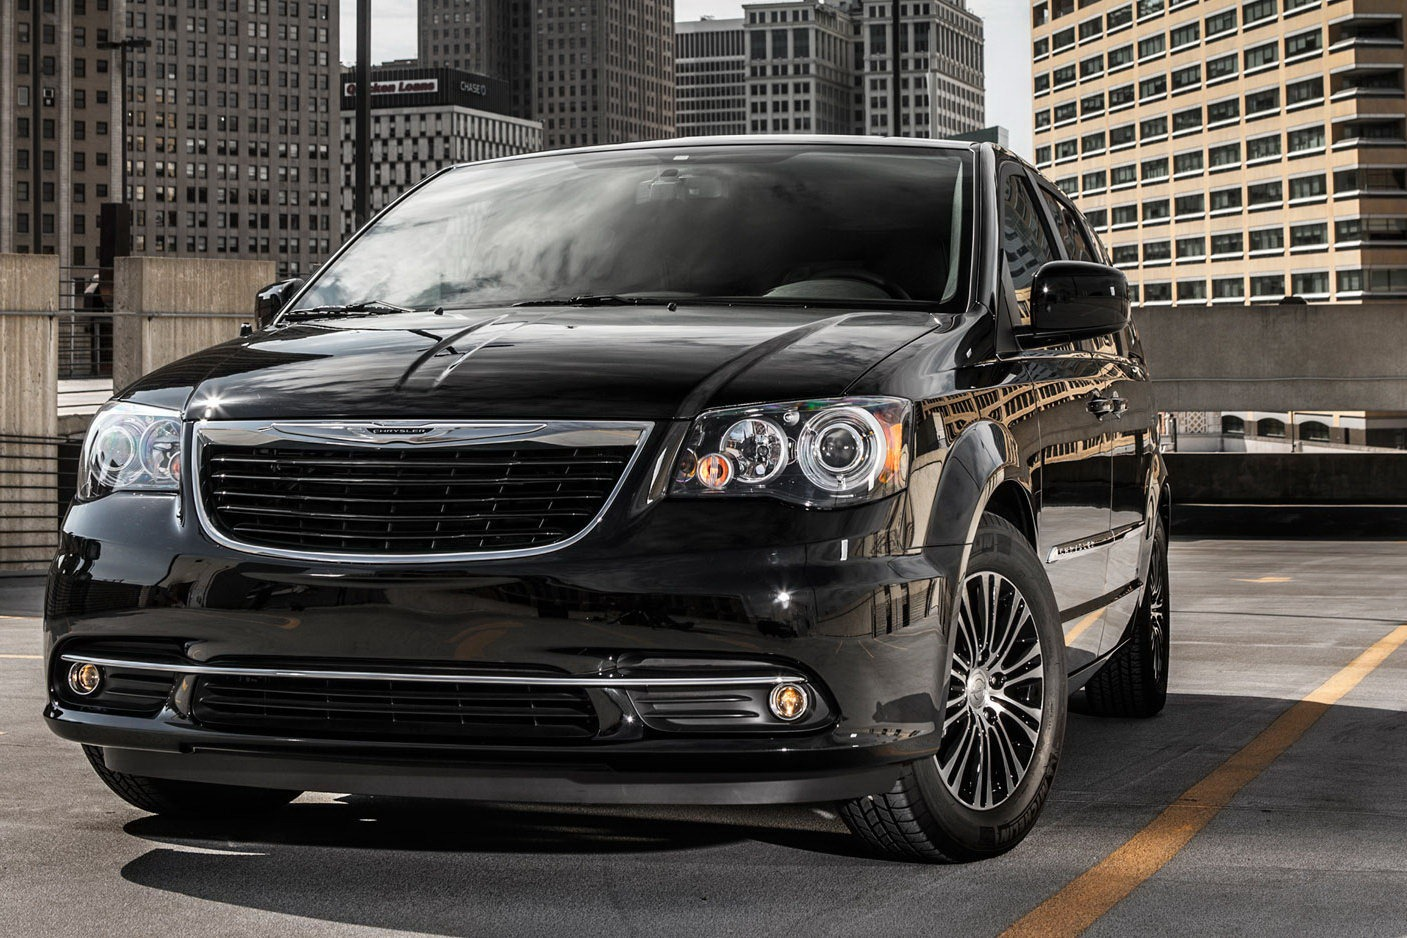 2015 Chrysler Town and Country #6